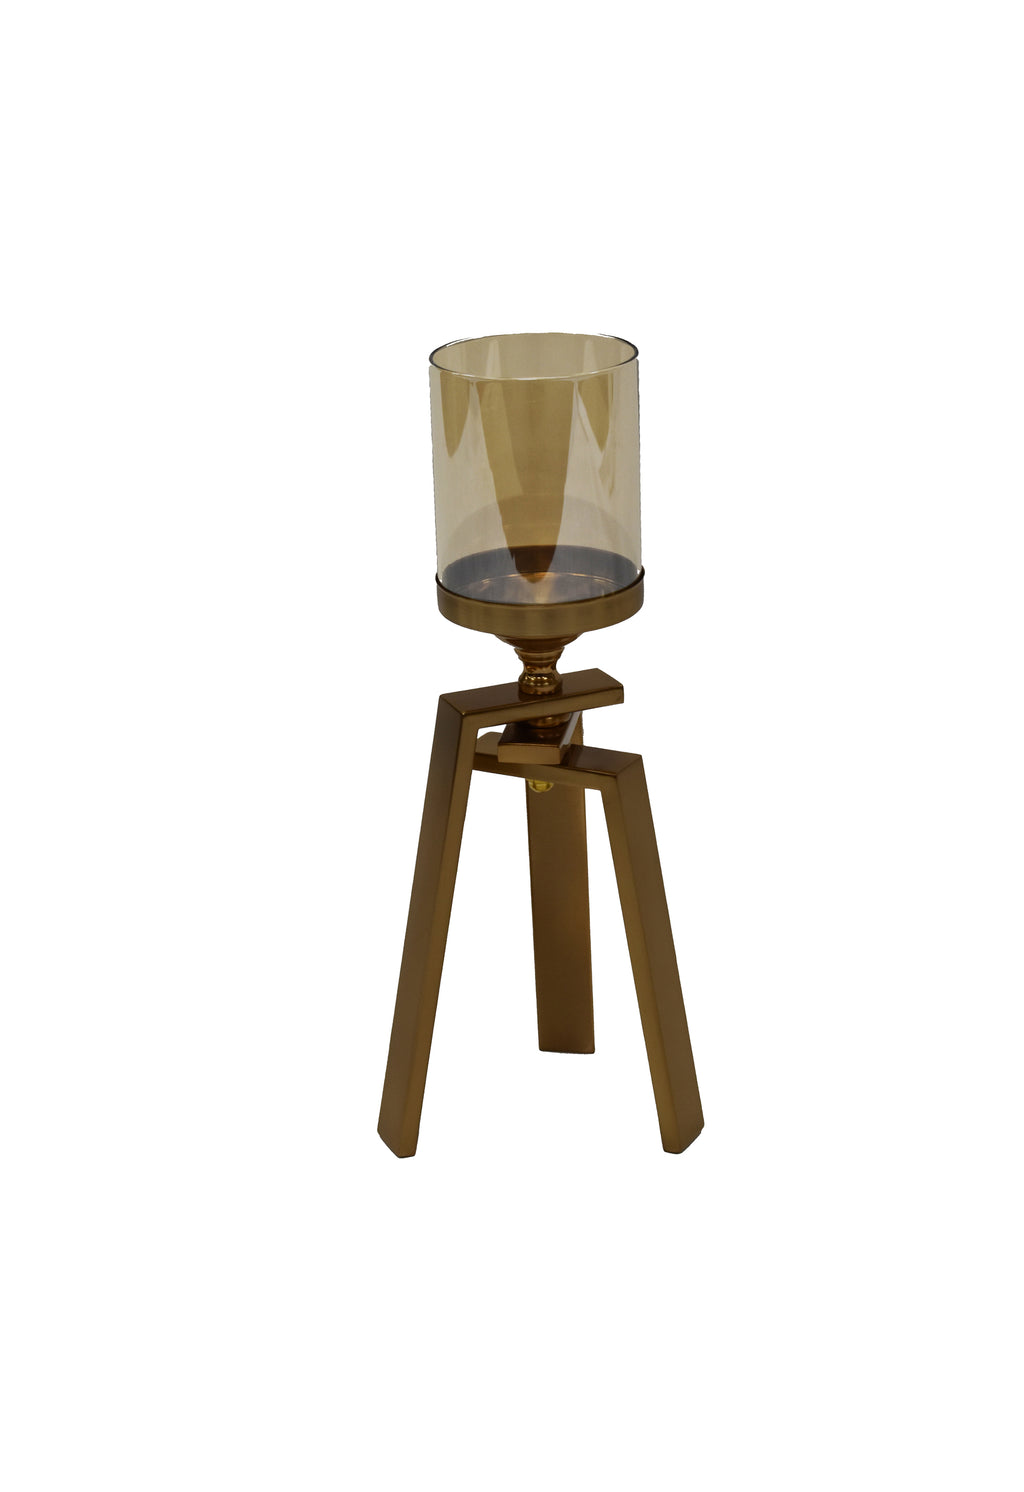 Deco Candlestick With Legs FREE 4-Day Shipping